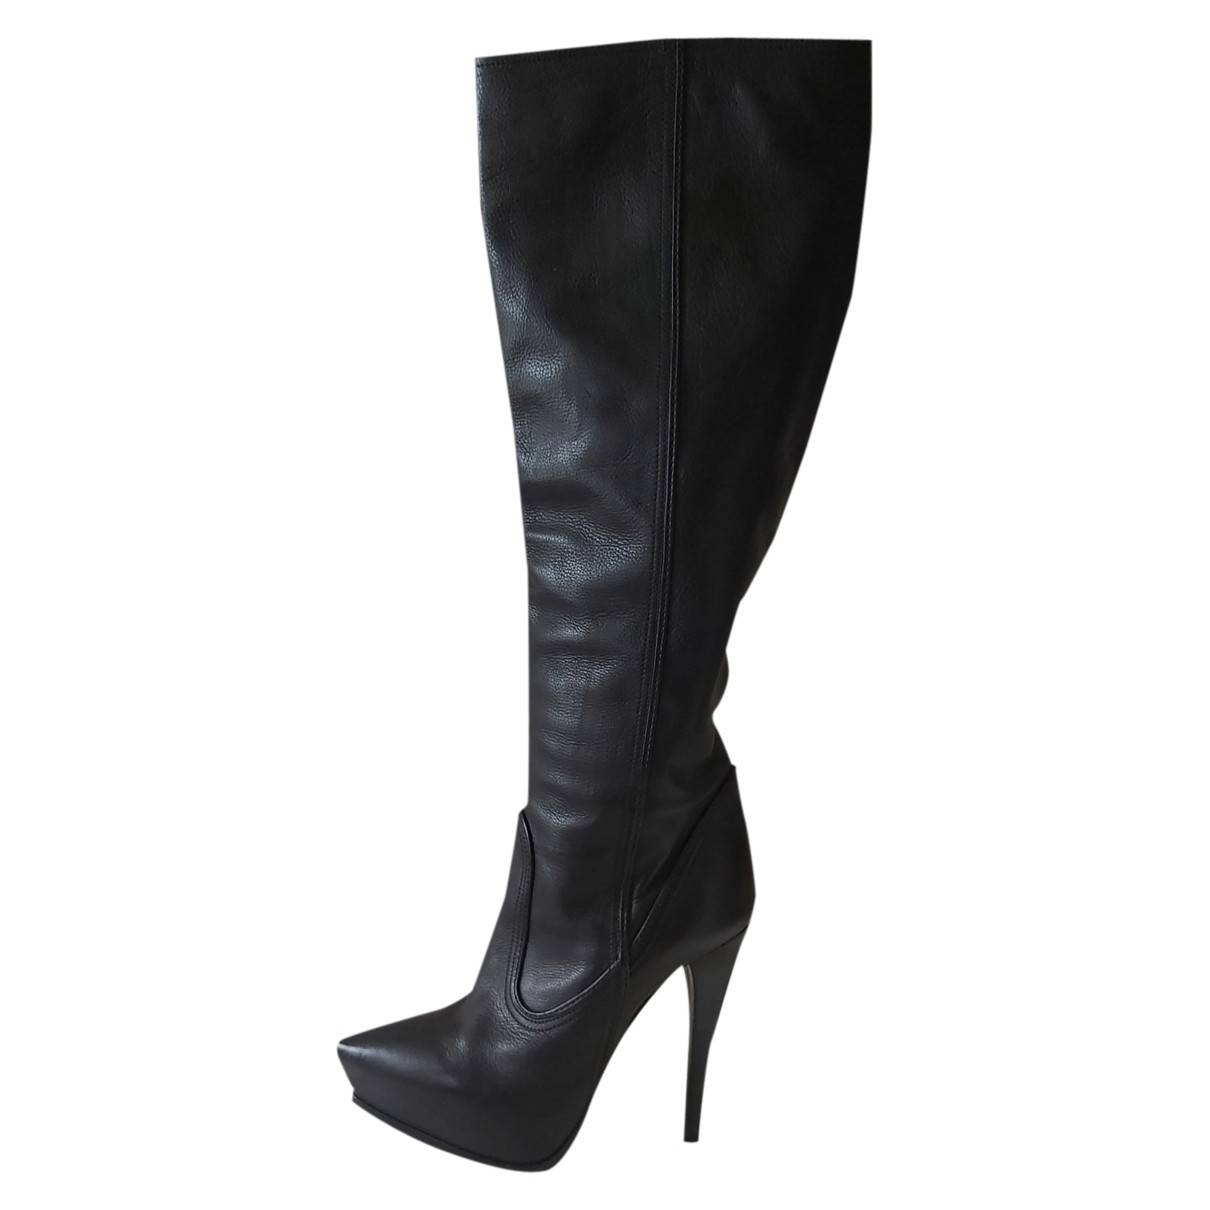 Lanvin \N Black Leather Boots for Women 38 EU